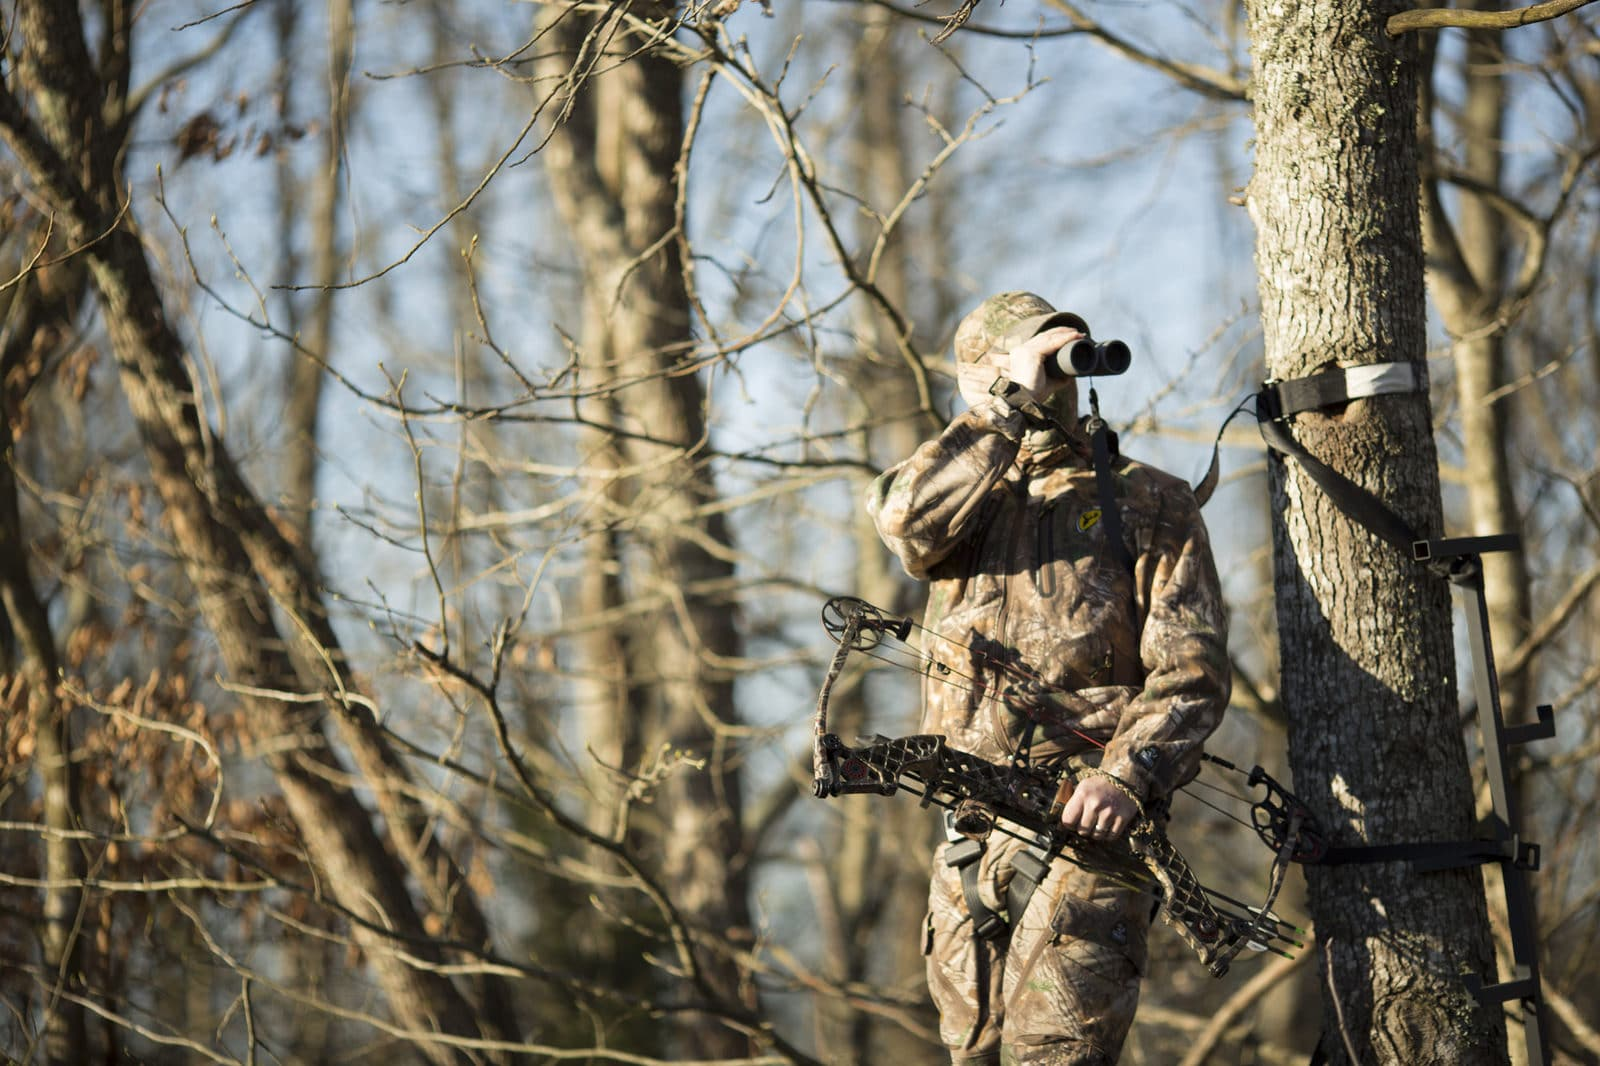 Cover scents are advantageous to reduce the impact of human odor in the woods.